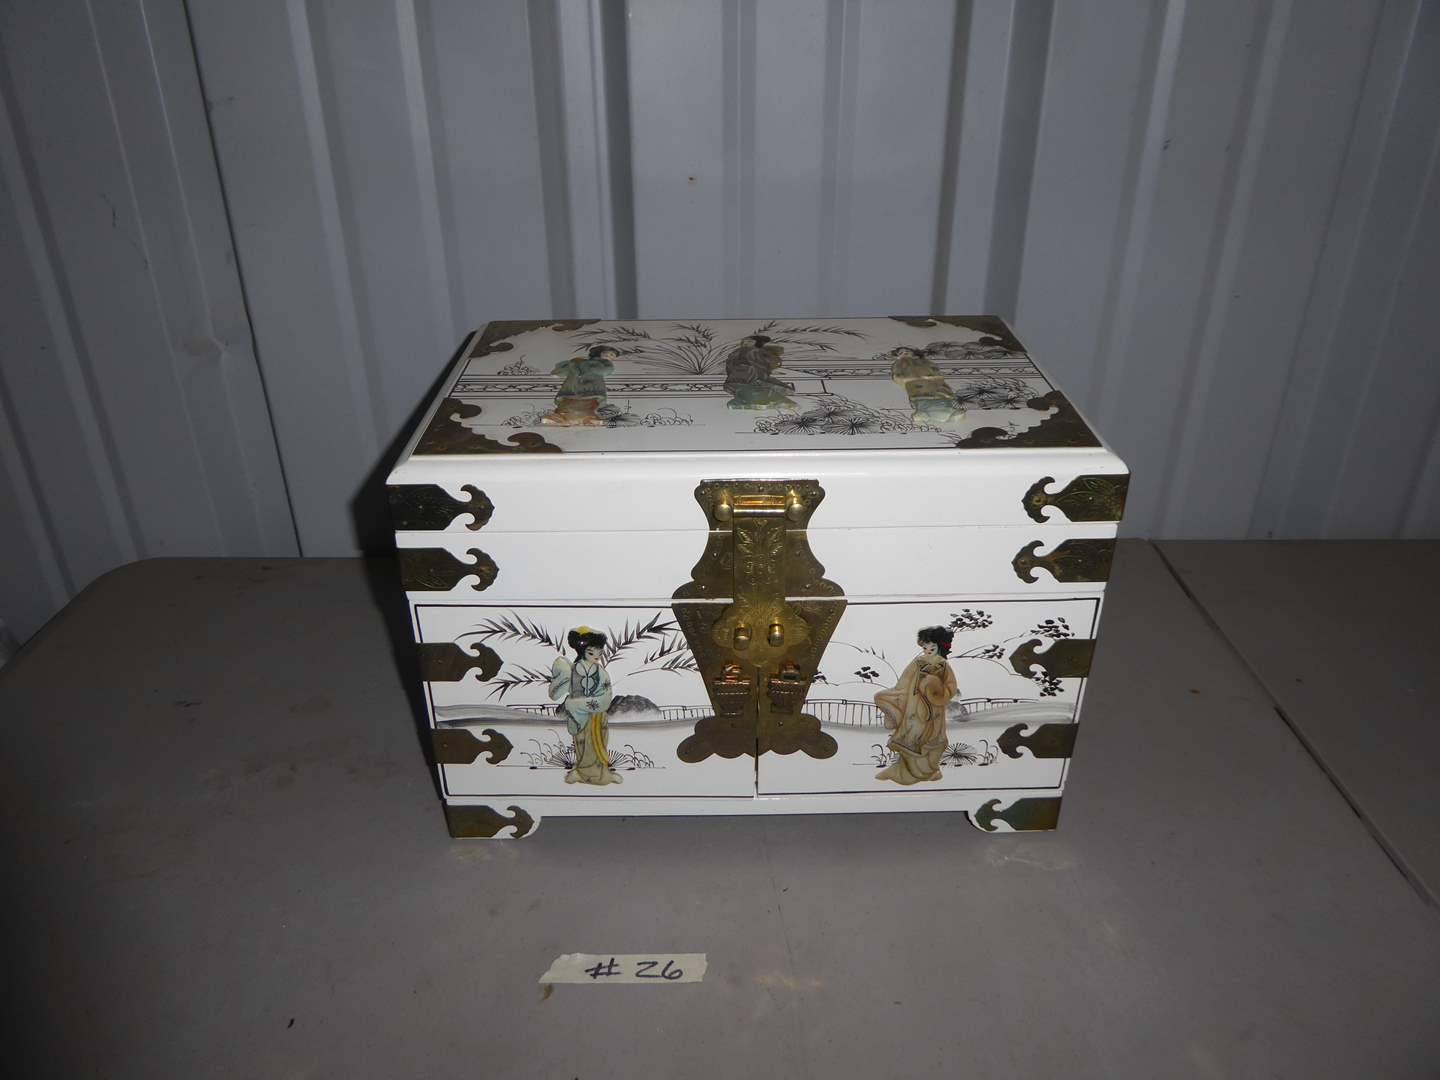 Lot # 26 - Wooden Jewelry Box W/Brass Hardware & Resin Embellishments  (main image)